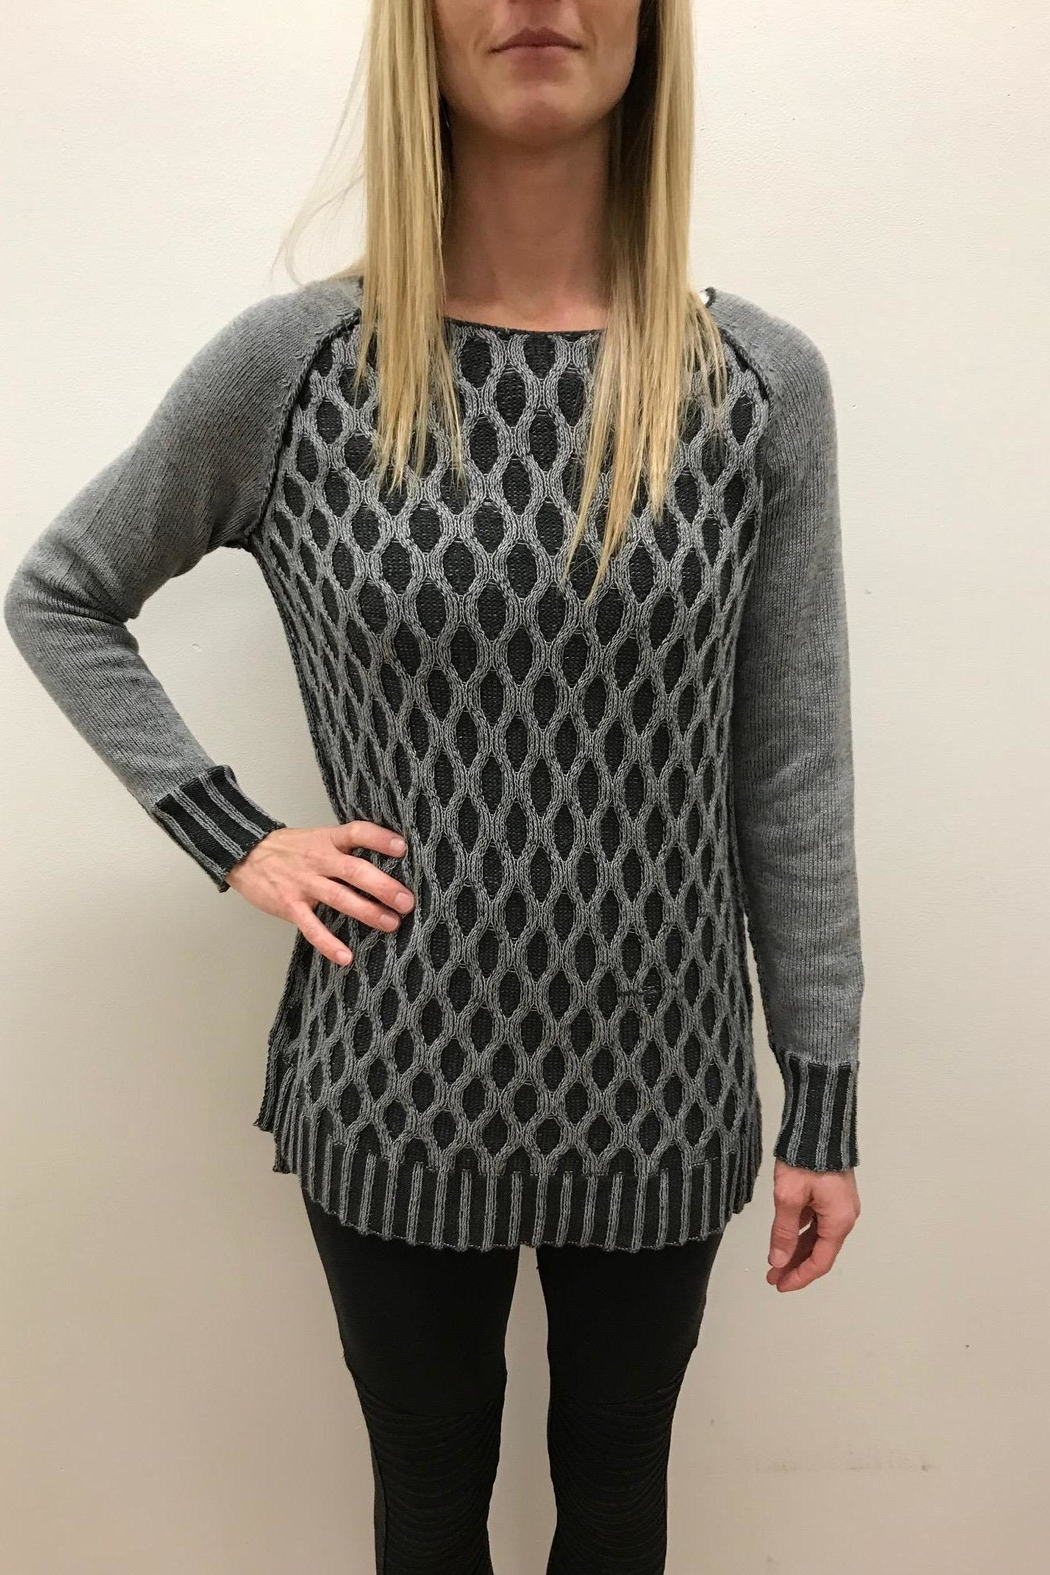 Tribal Cotton Cable Sweater from Nebraska by Lana a Boutique ...